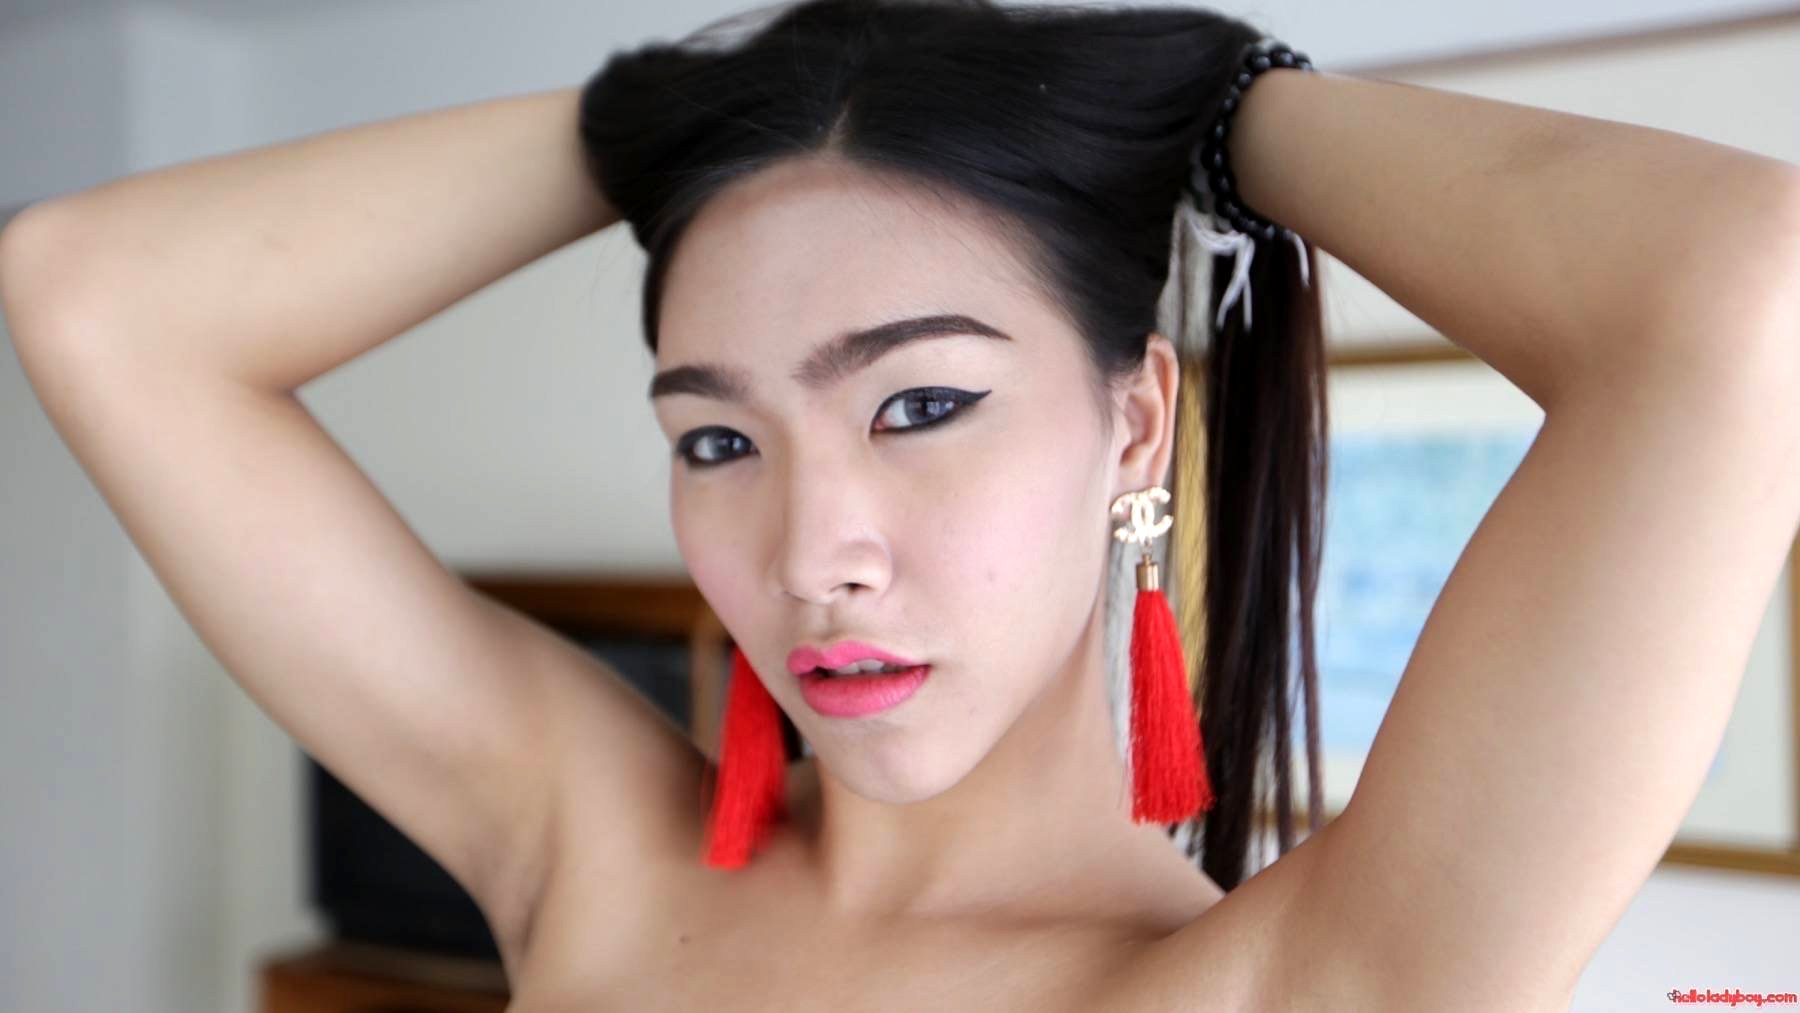 21 Year Old Busty Asian TGirl Strips And Sucks Tourist Tool For A Facial